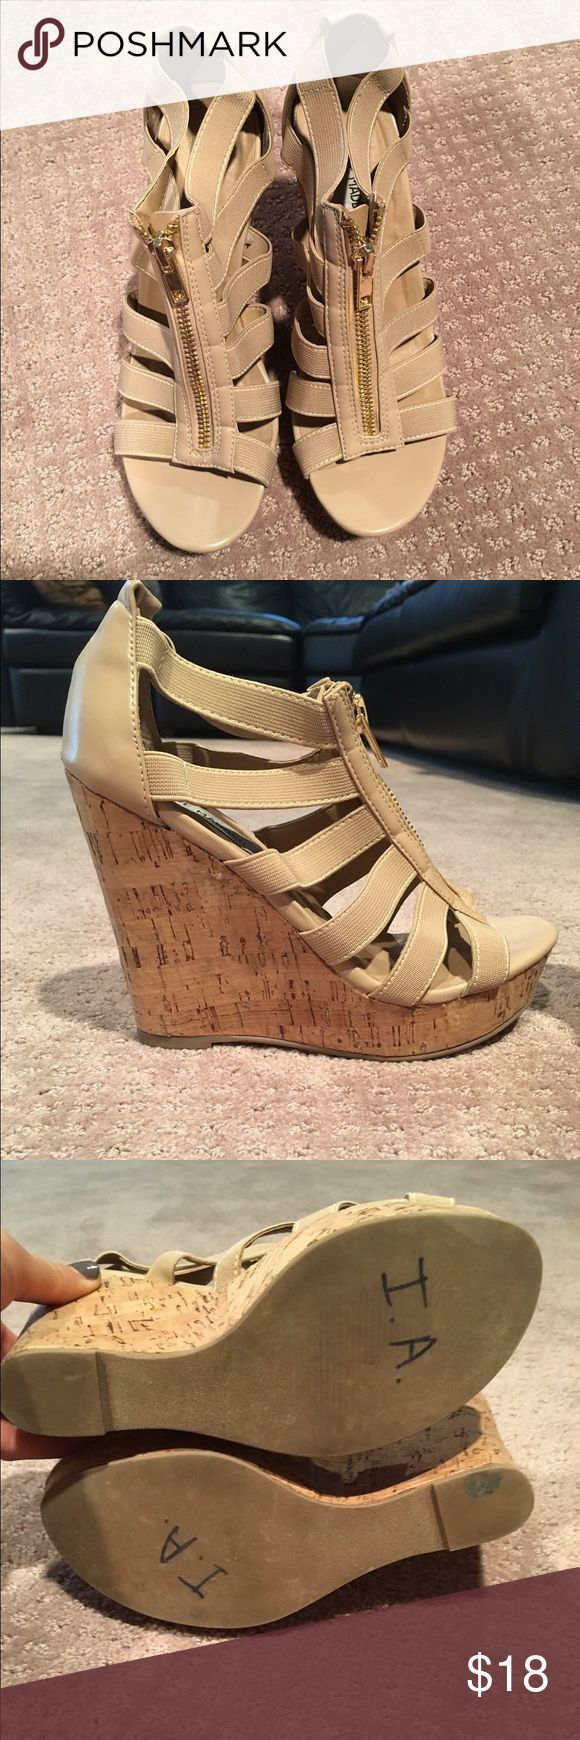 Nude zip up wedges Strappy nude wedges zip up top cork bottom. EUC hardly worn. Don't have original box. Steve Madden Shoes Wedges